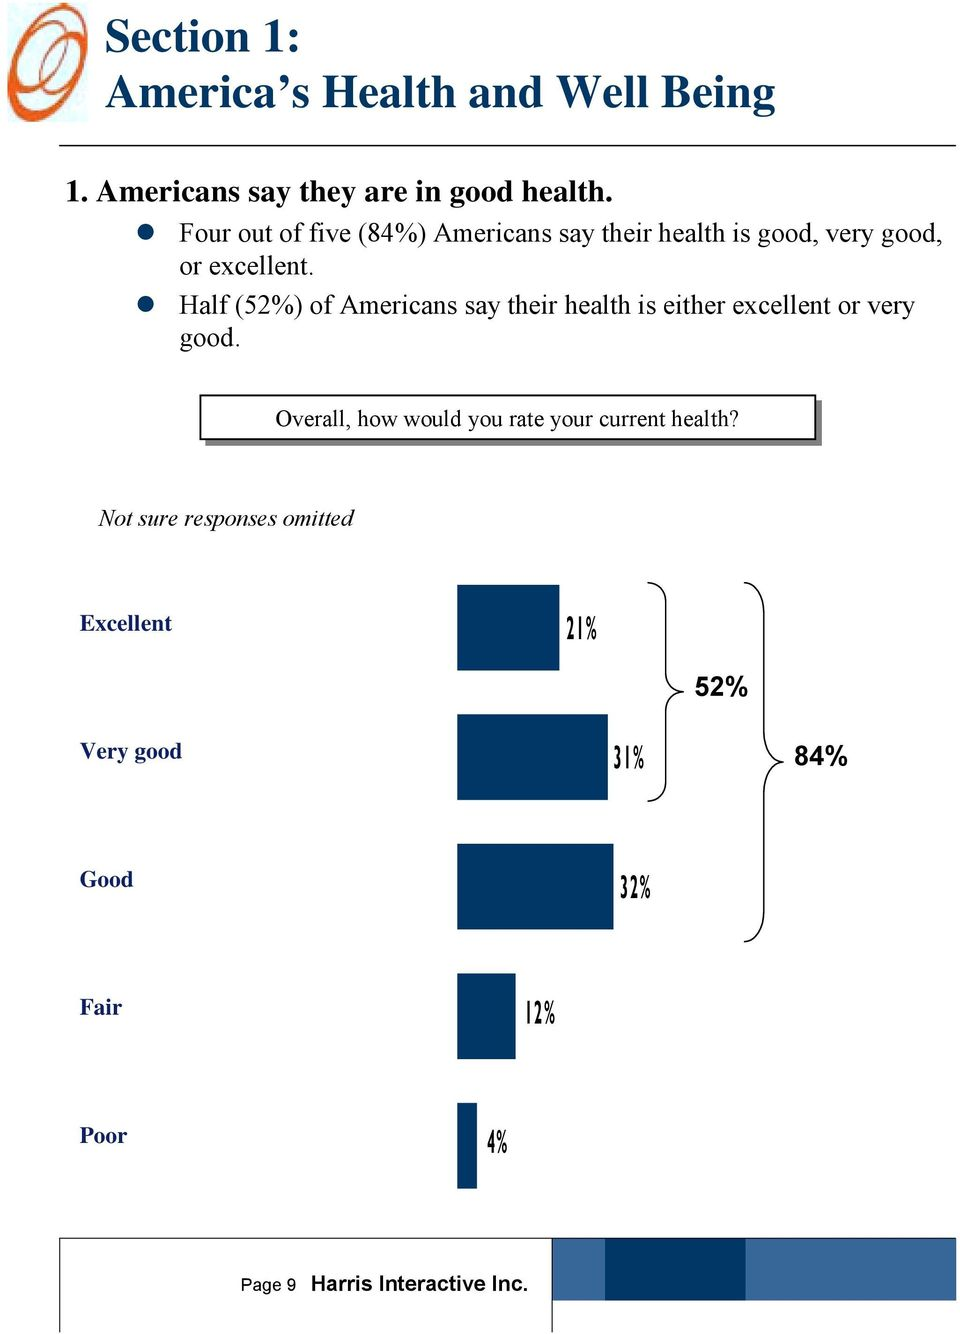 """ Half (52%) of Americans say their health is either excellent or very good."